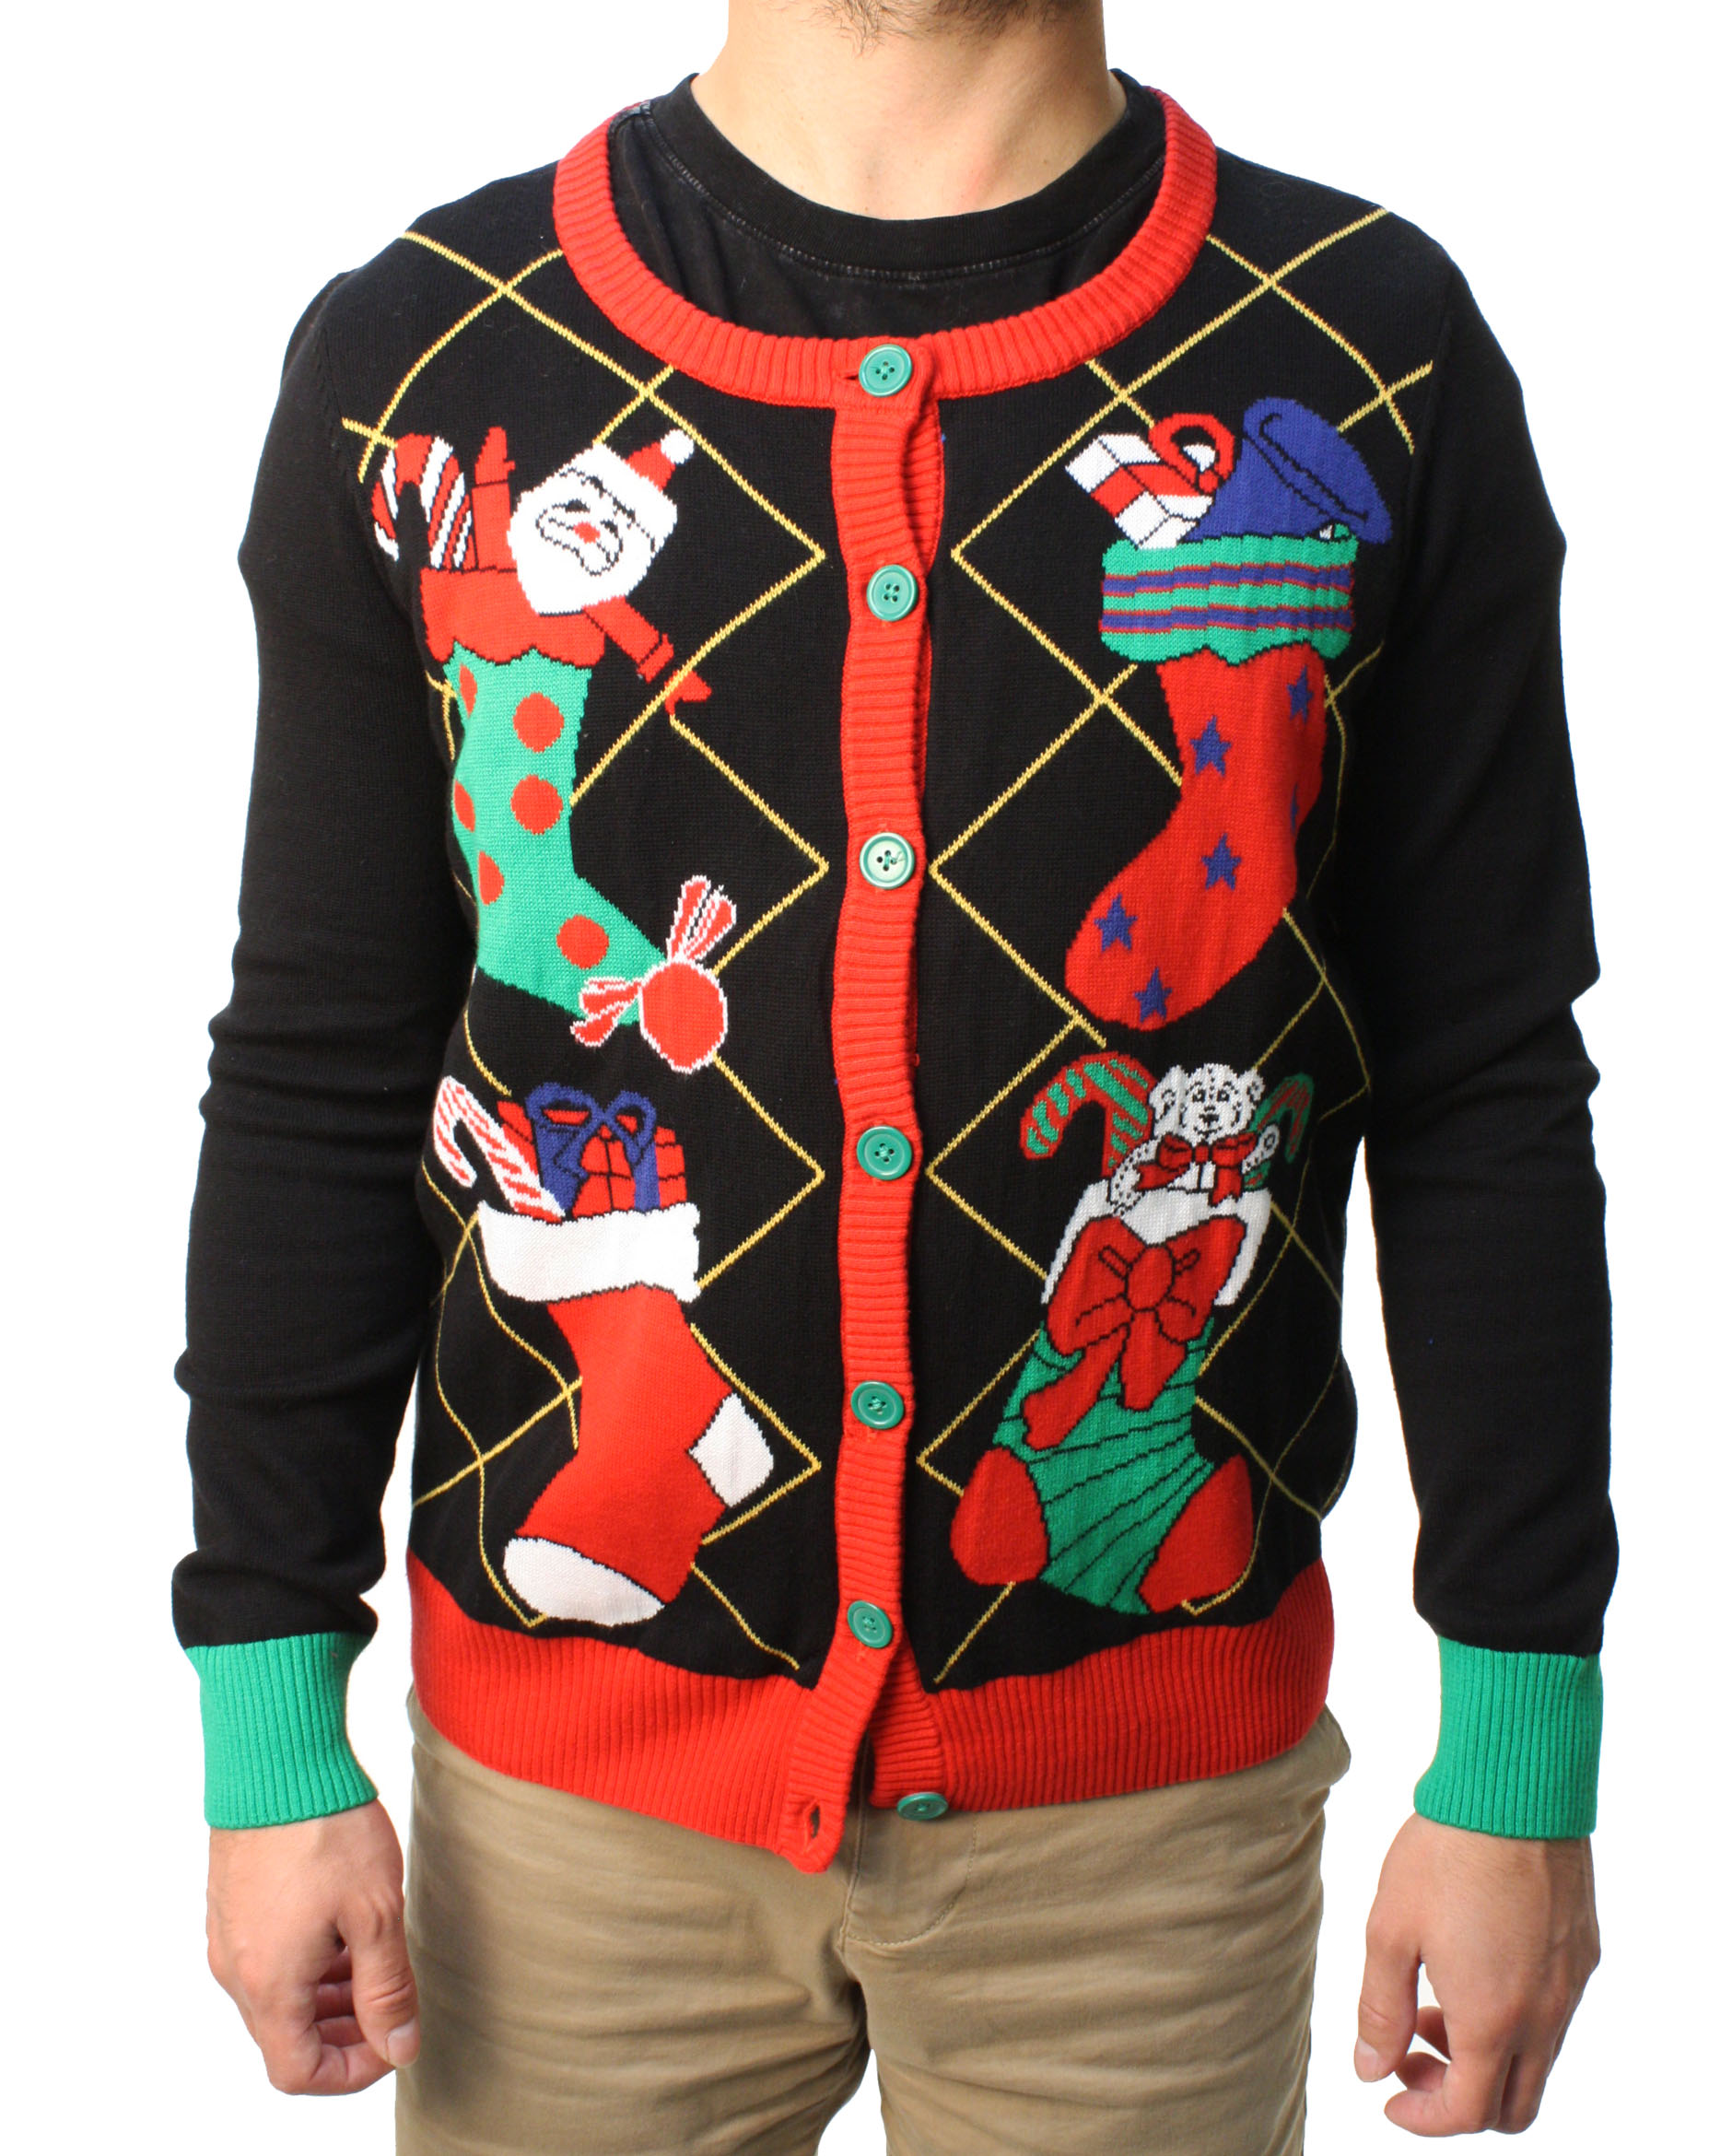 Ugly Christmas Sweater Teen Boy's Stuffed Stocking Cardigan Sweater